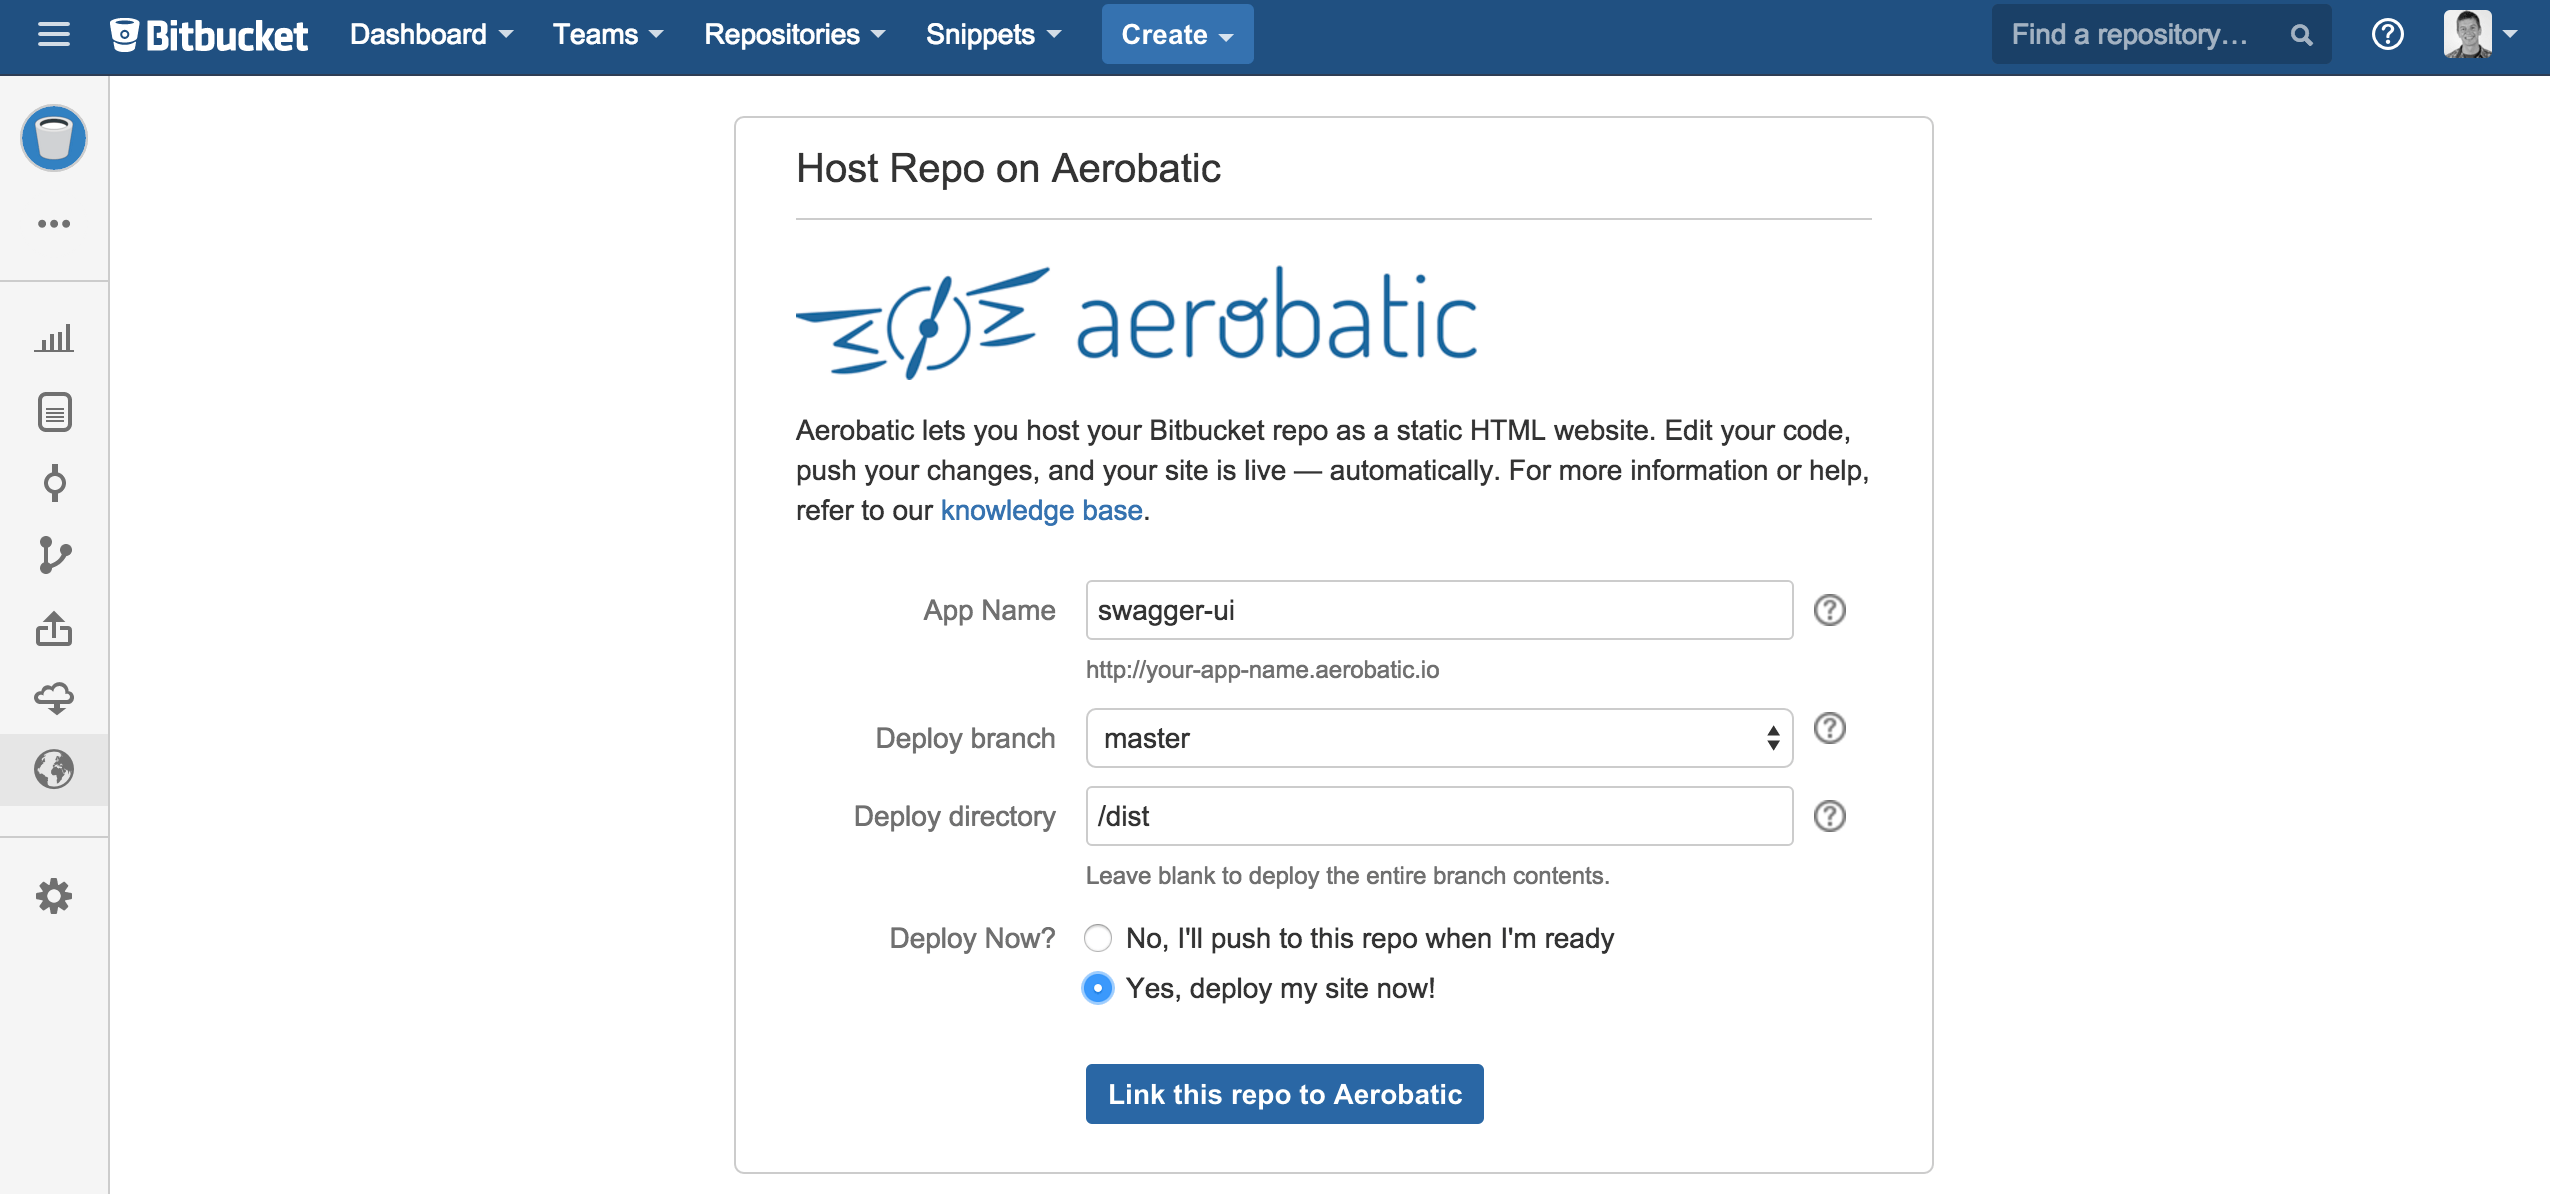 Hosting Swagger API Documentation with Bitbucket - Aerobatic